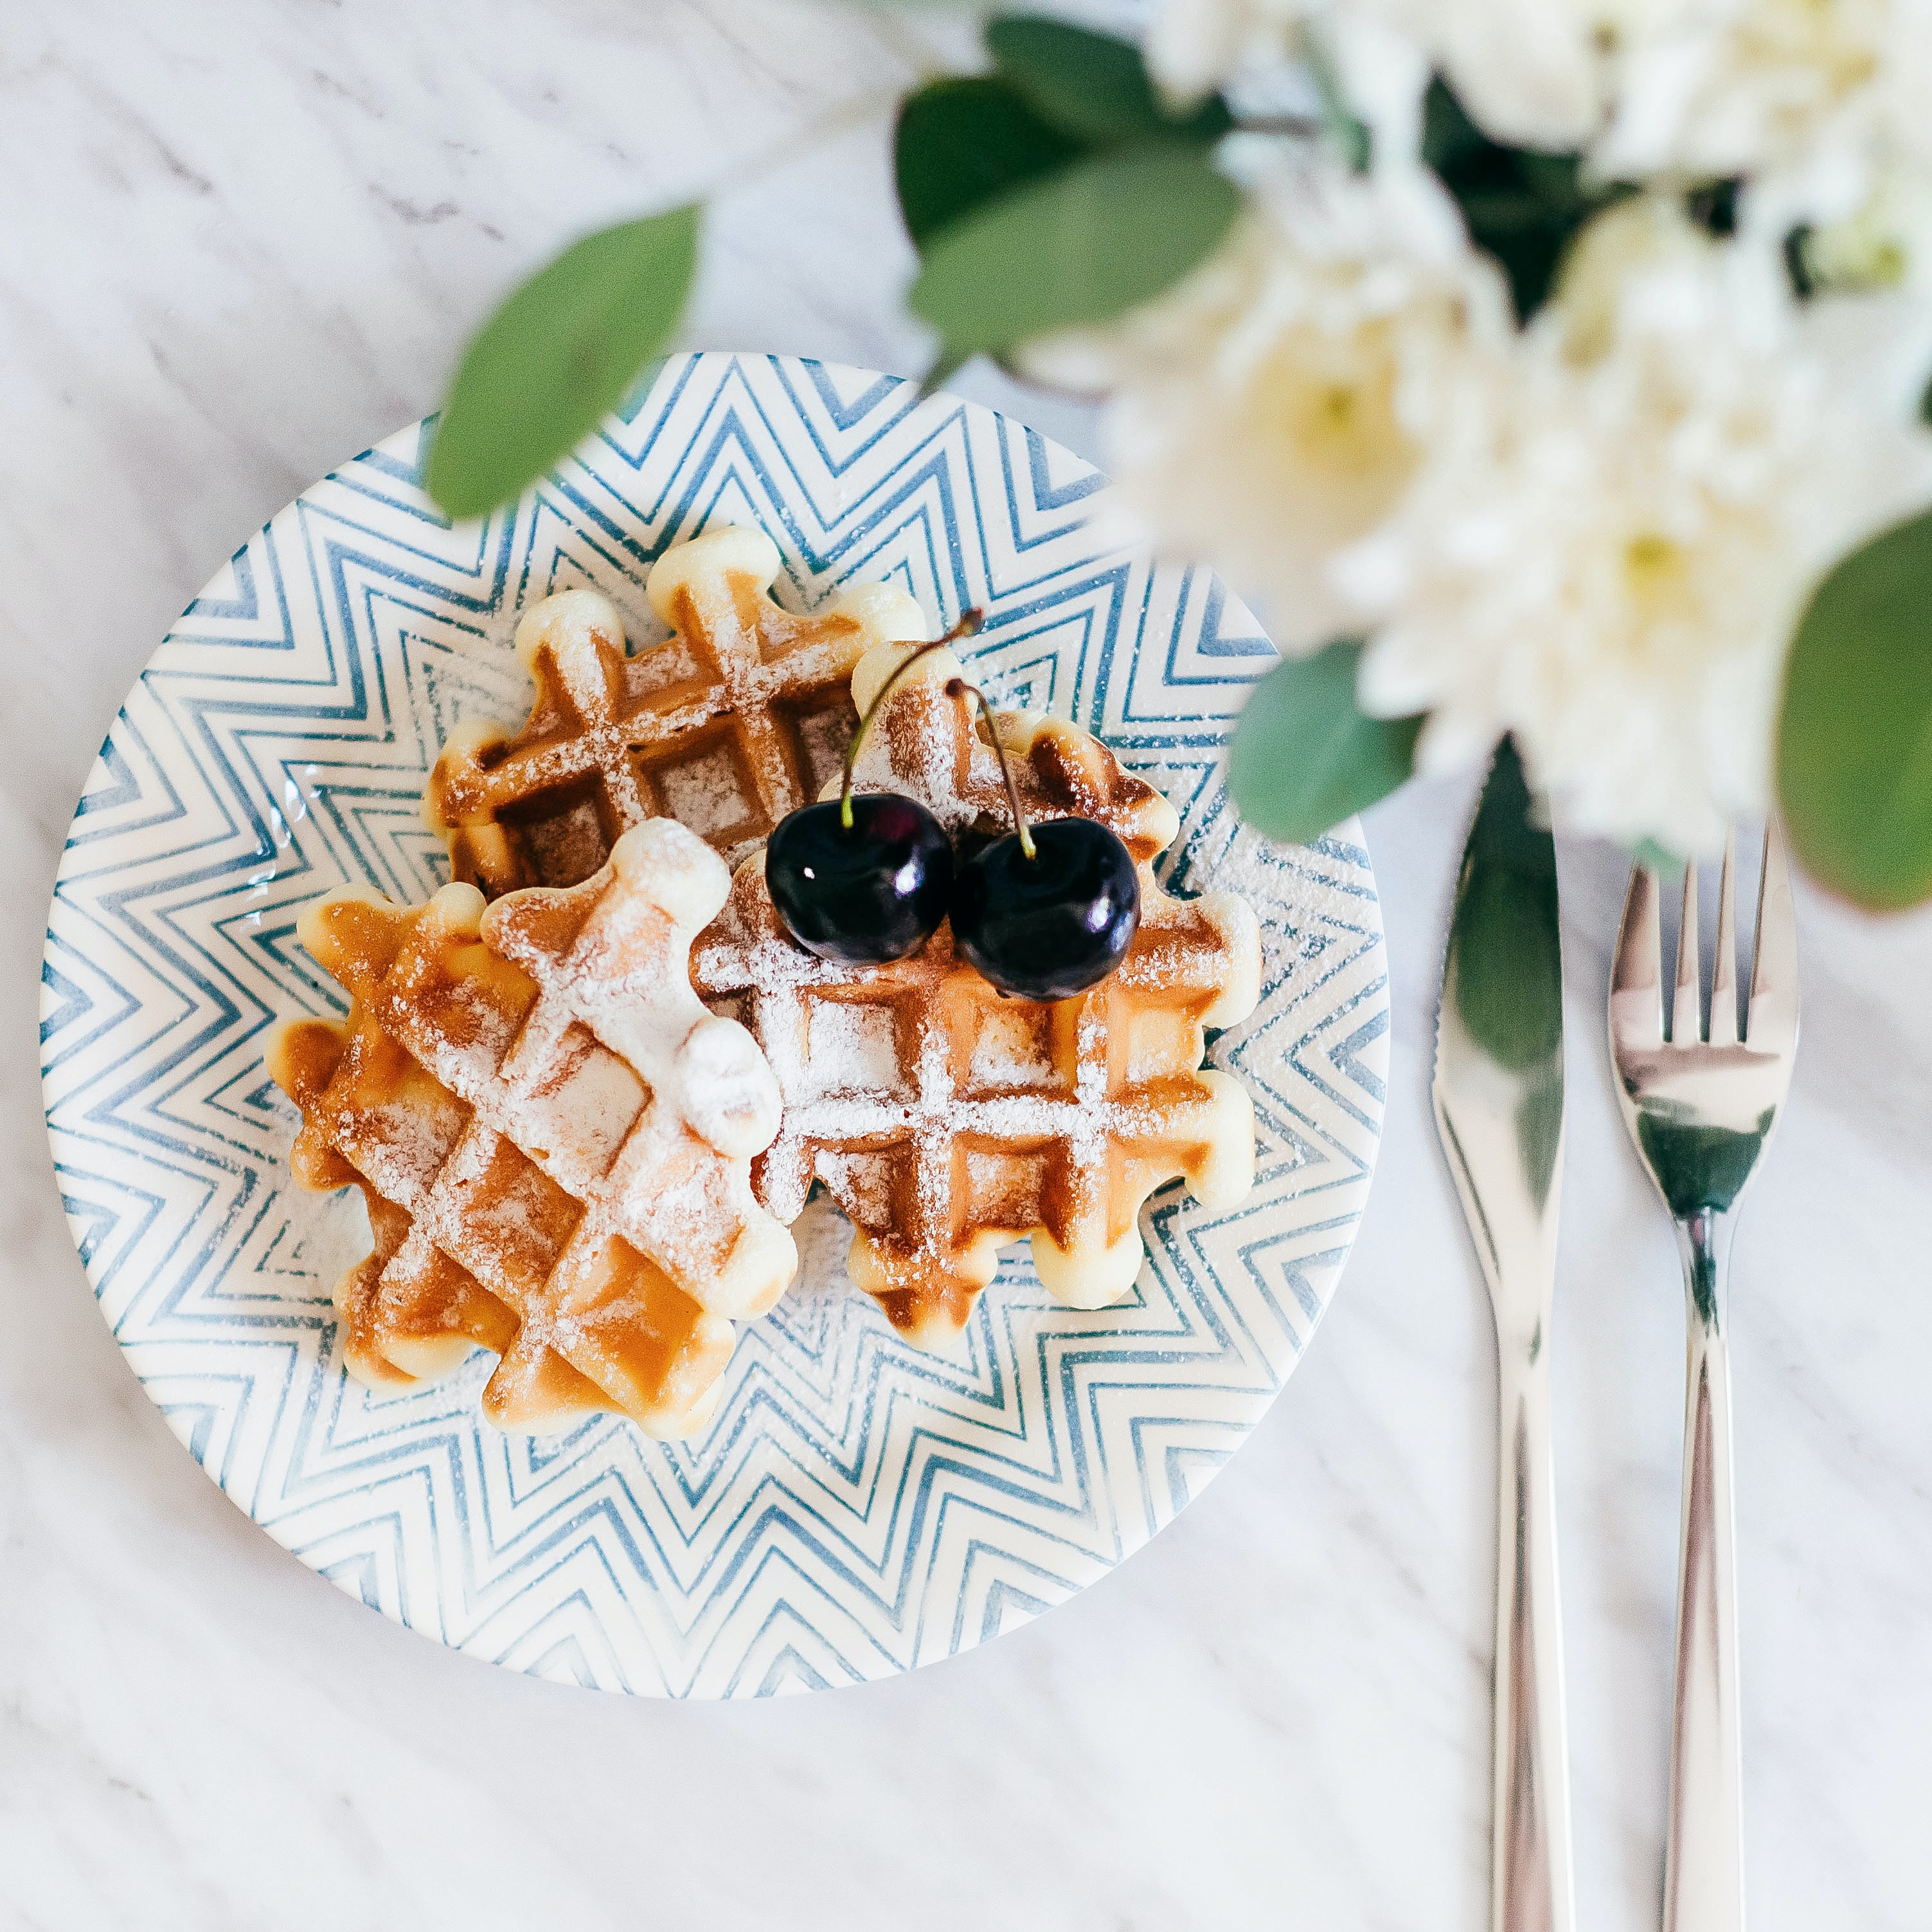 3 waffles on saucer with 2 cherry fruits beside fork and bread knife